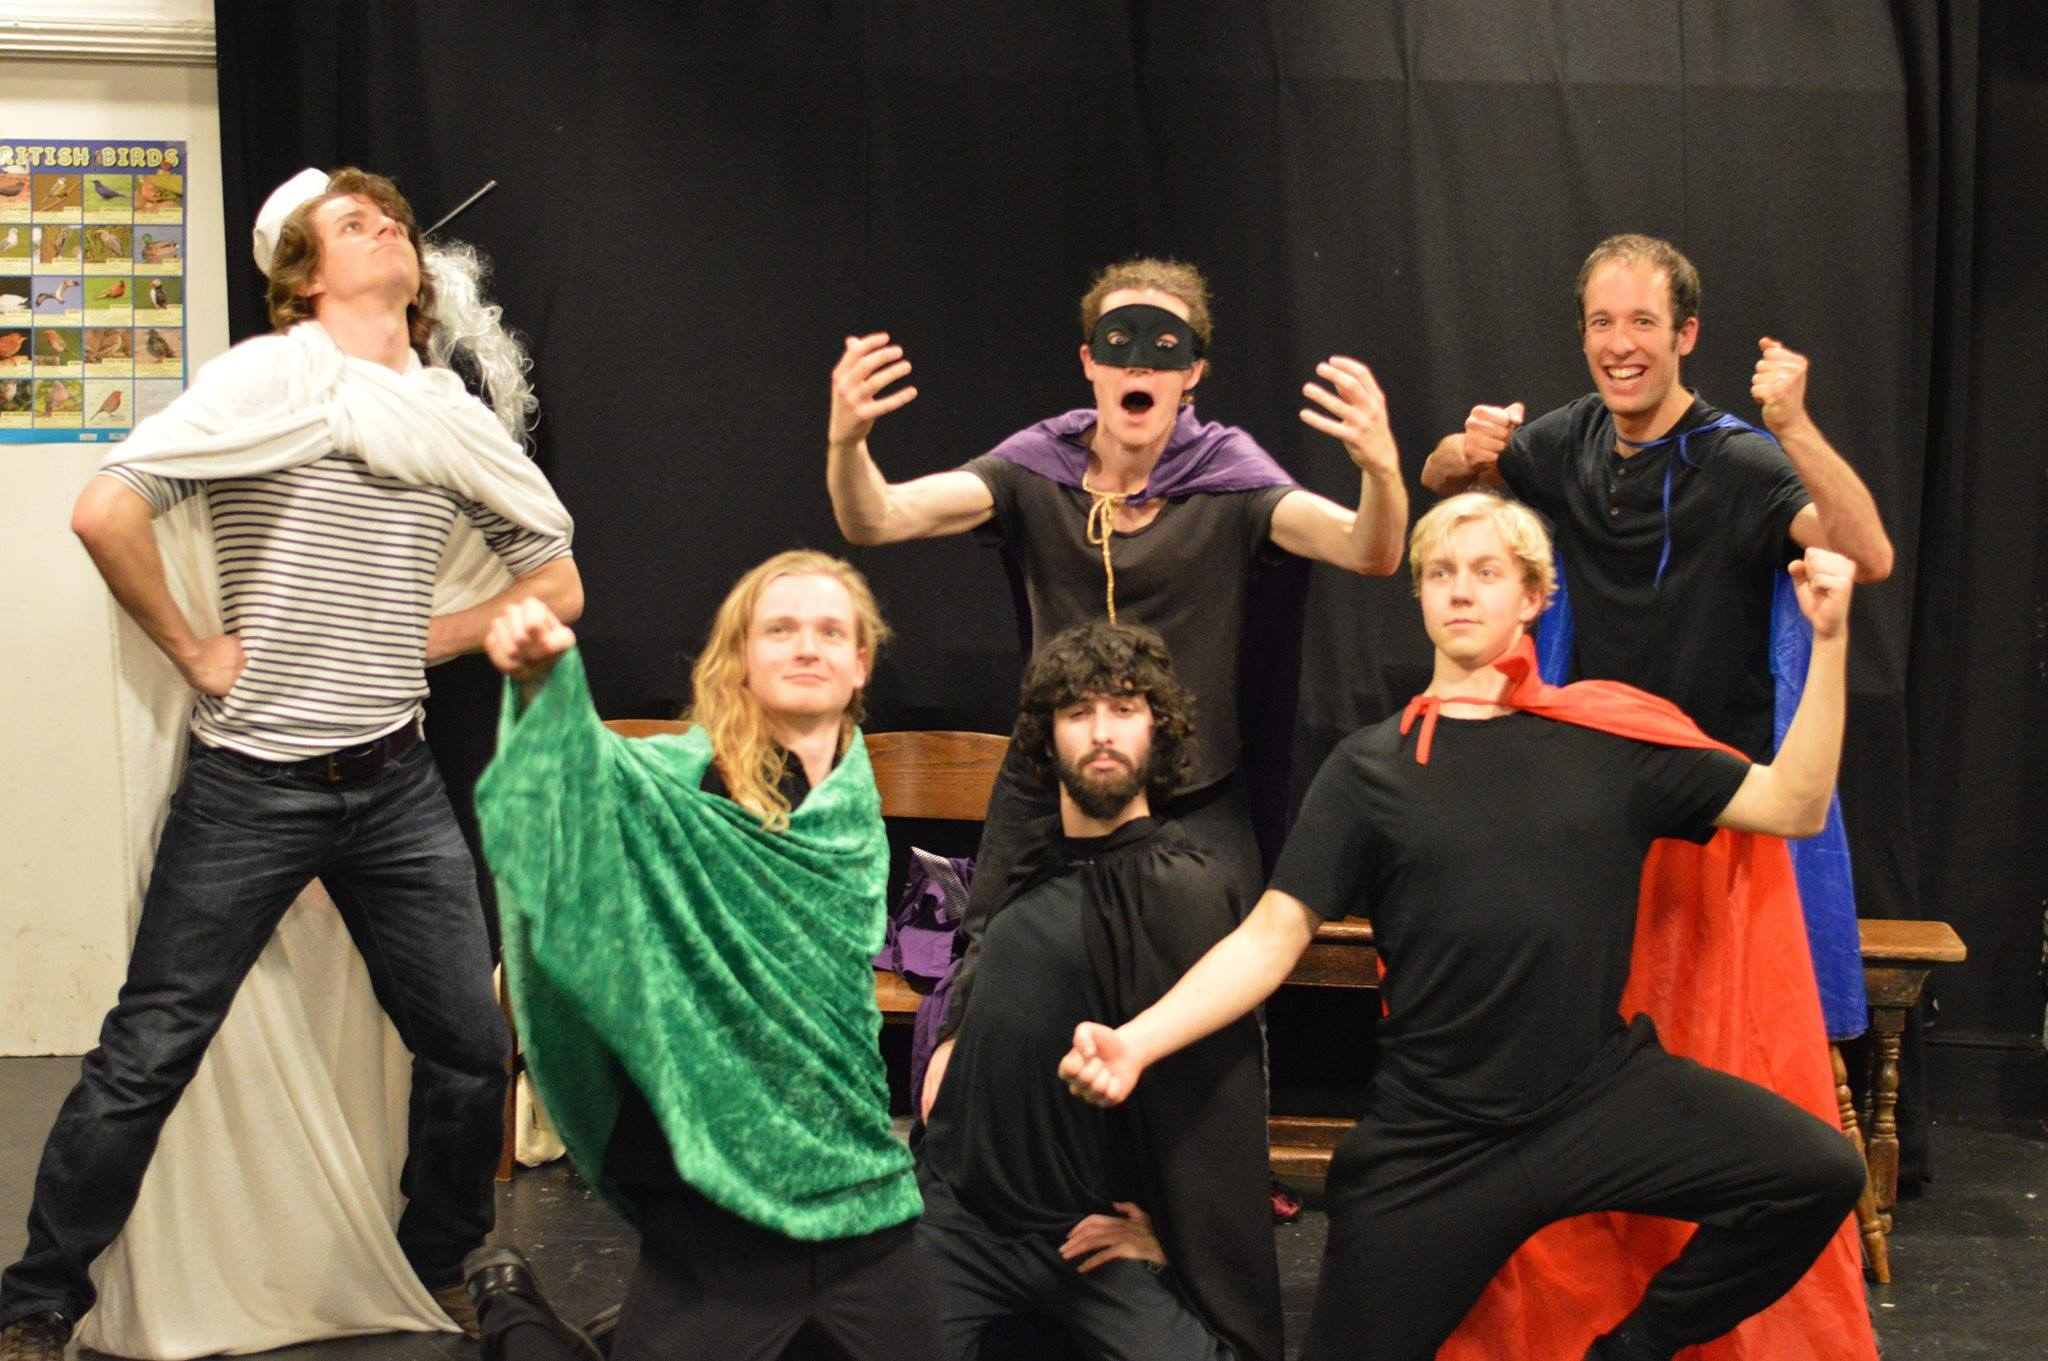 ASEMBLE Cast -  Top row, left to right: Ed Elcock (Director), Alex O'Bryan Tear, Michael Conterio.  Bottom row, left to right: Benjamin Dobson, Joel Lipson and myself